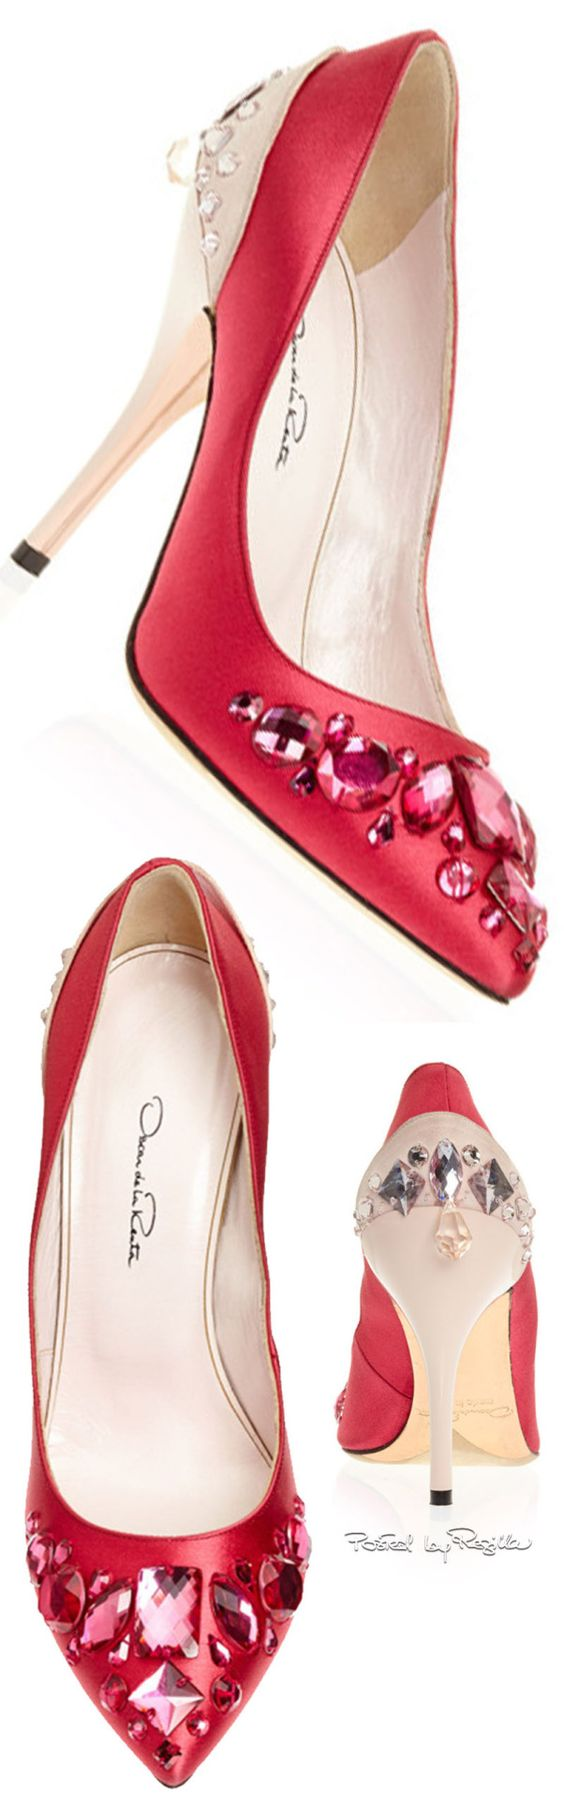 Oscar de la Renta pumps. Would love this gift for Valentine's day!